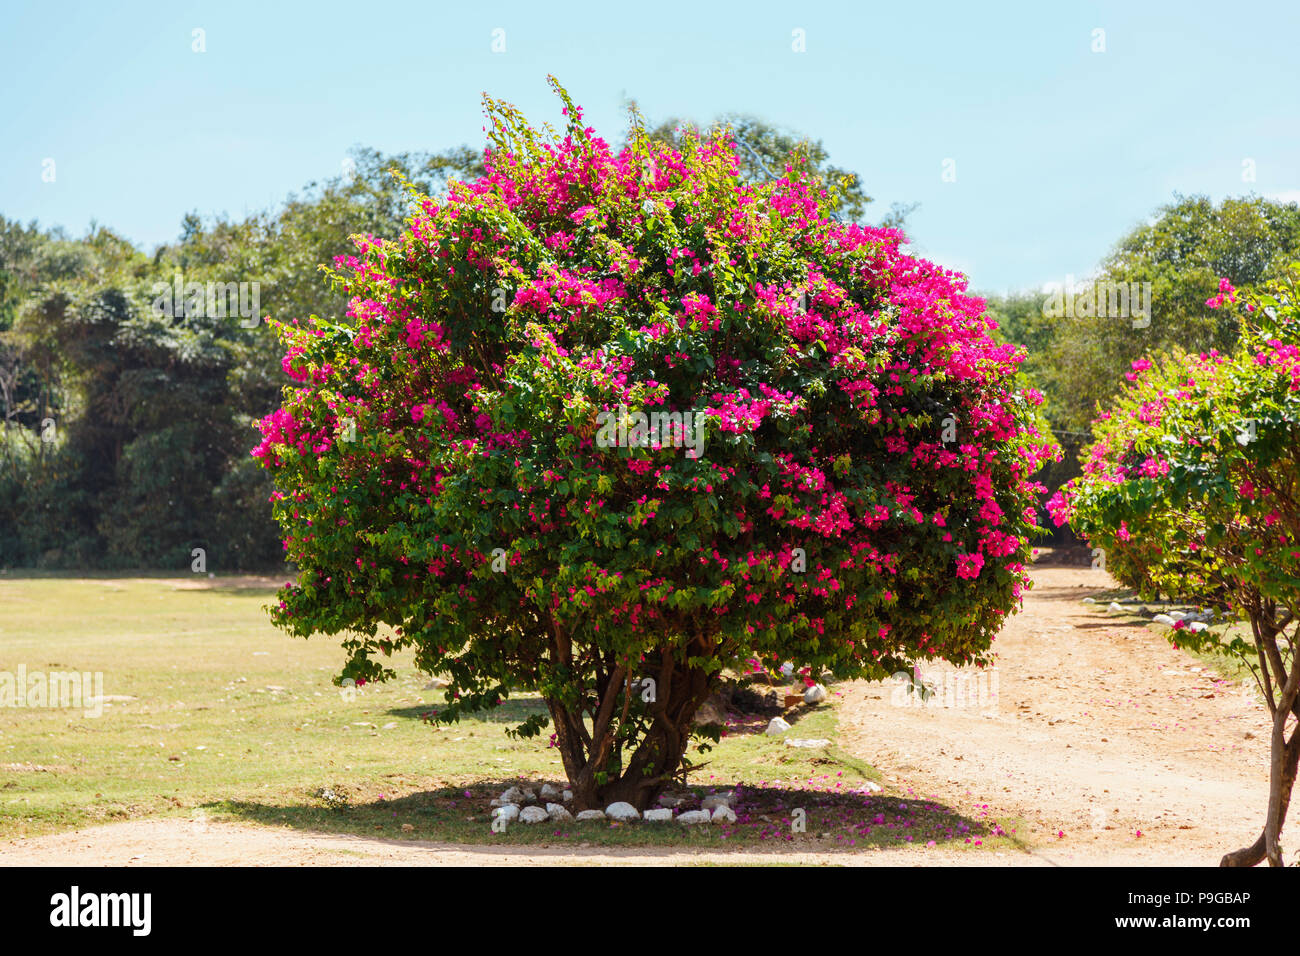 Large Flowering Bush With Pink Flowers In Gadren Natural Background